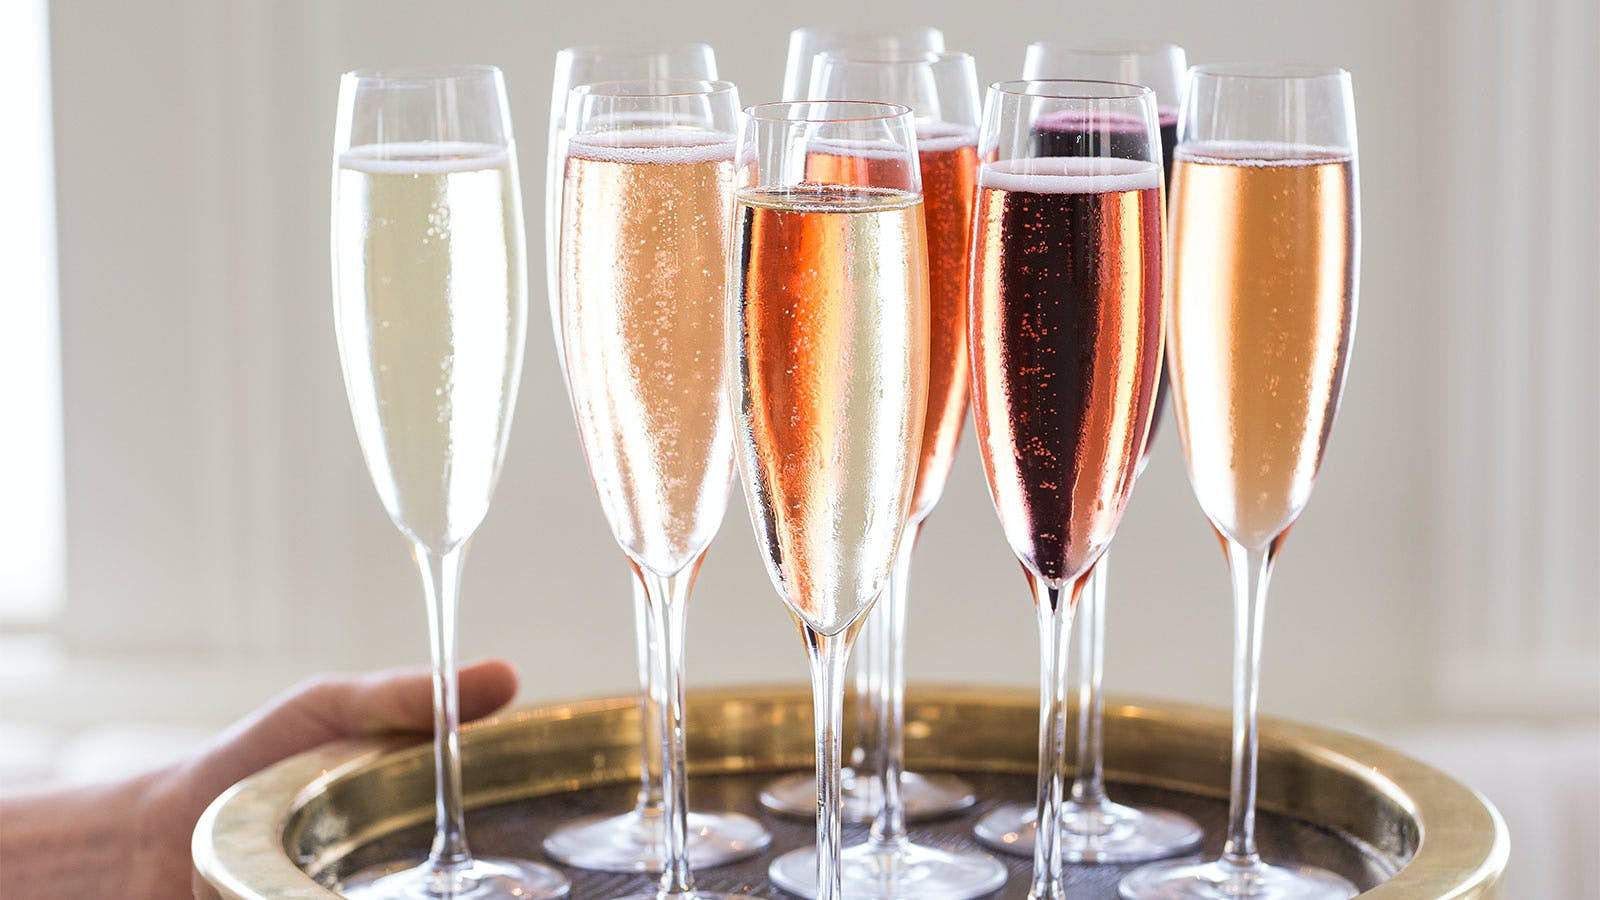 7 Dine-In Restaurants for Top-Notch Champagne